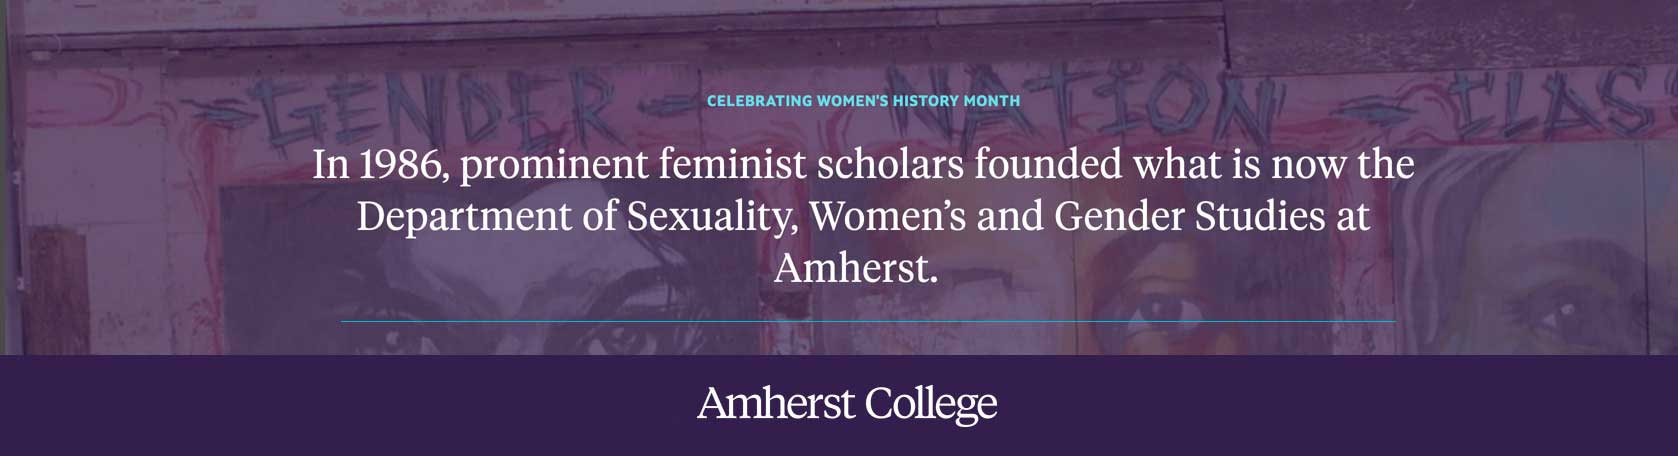 In 1986, the Sexuality, Women's and Gender Studies department was founded